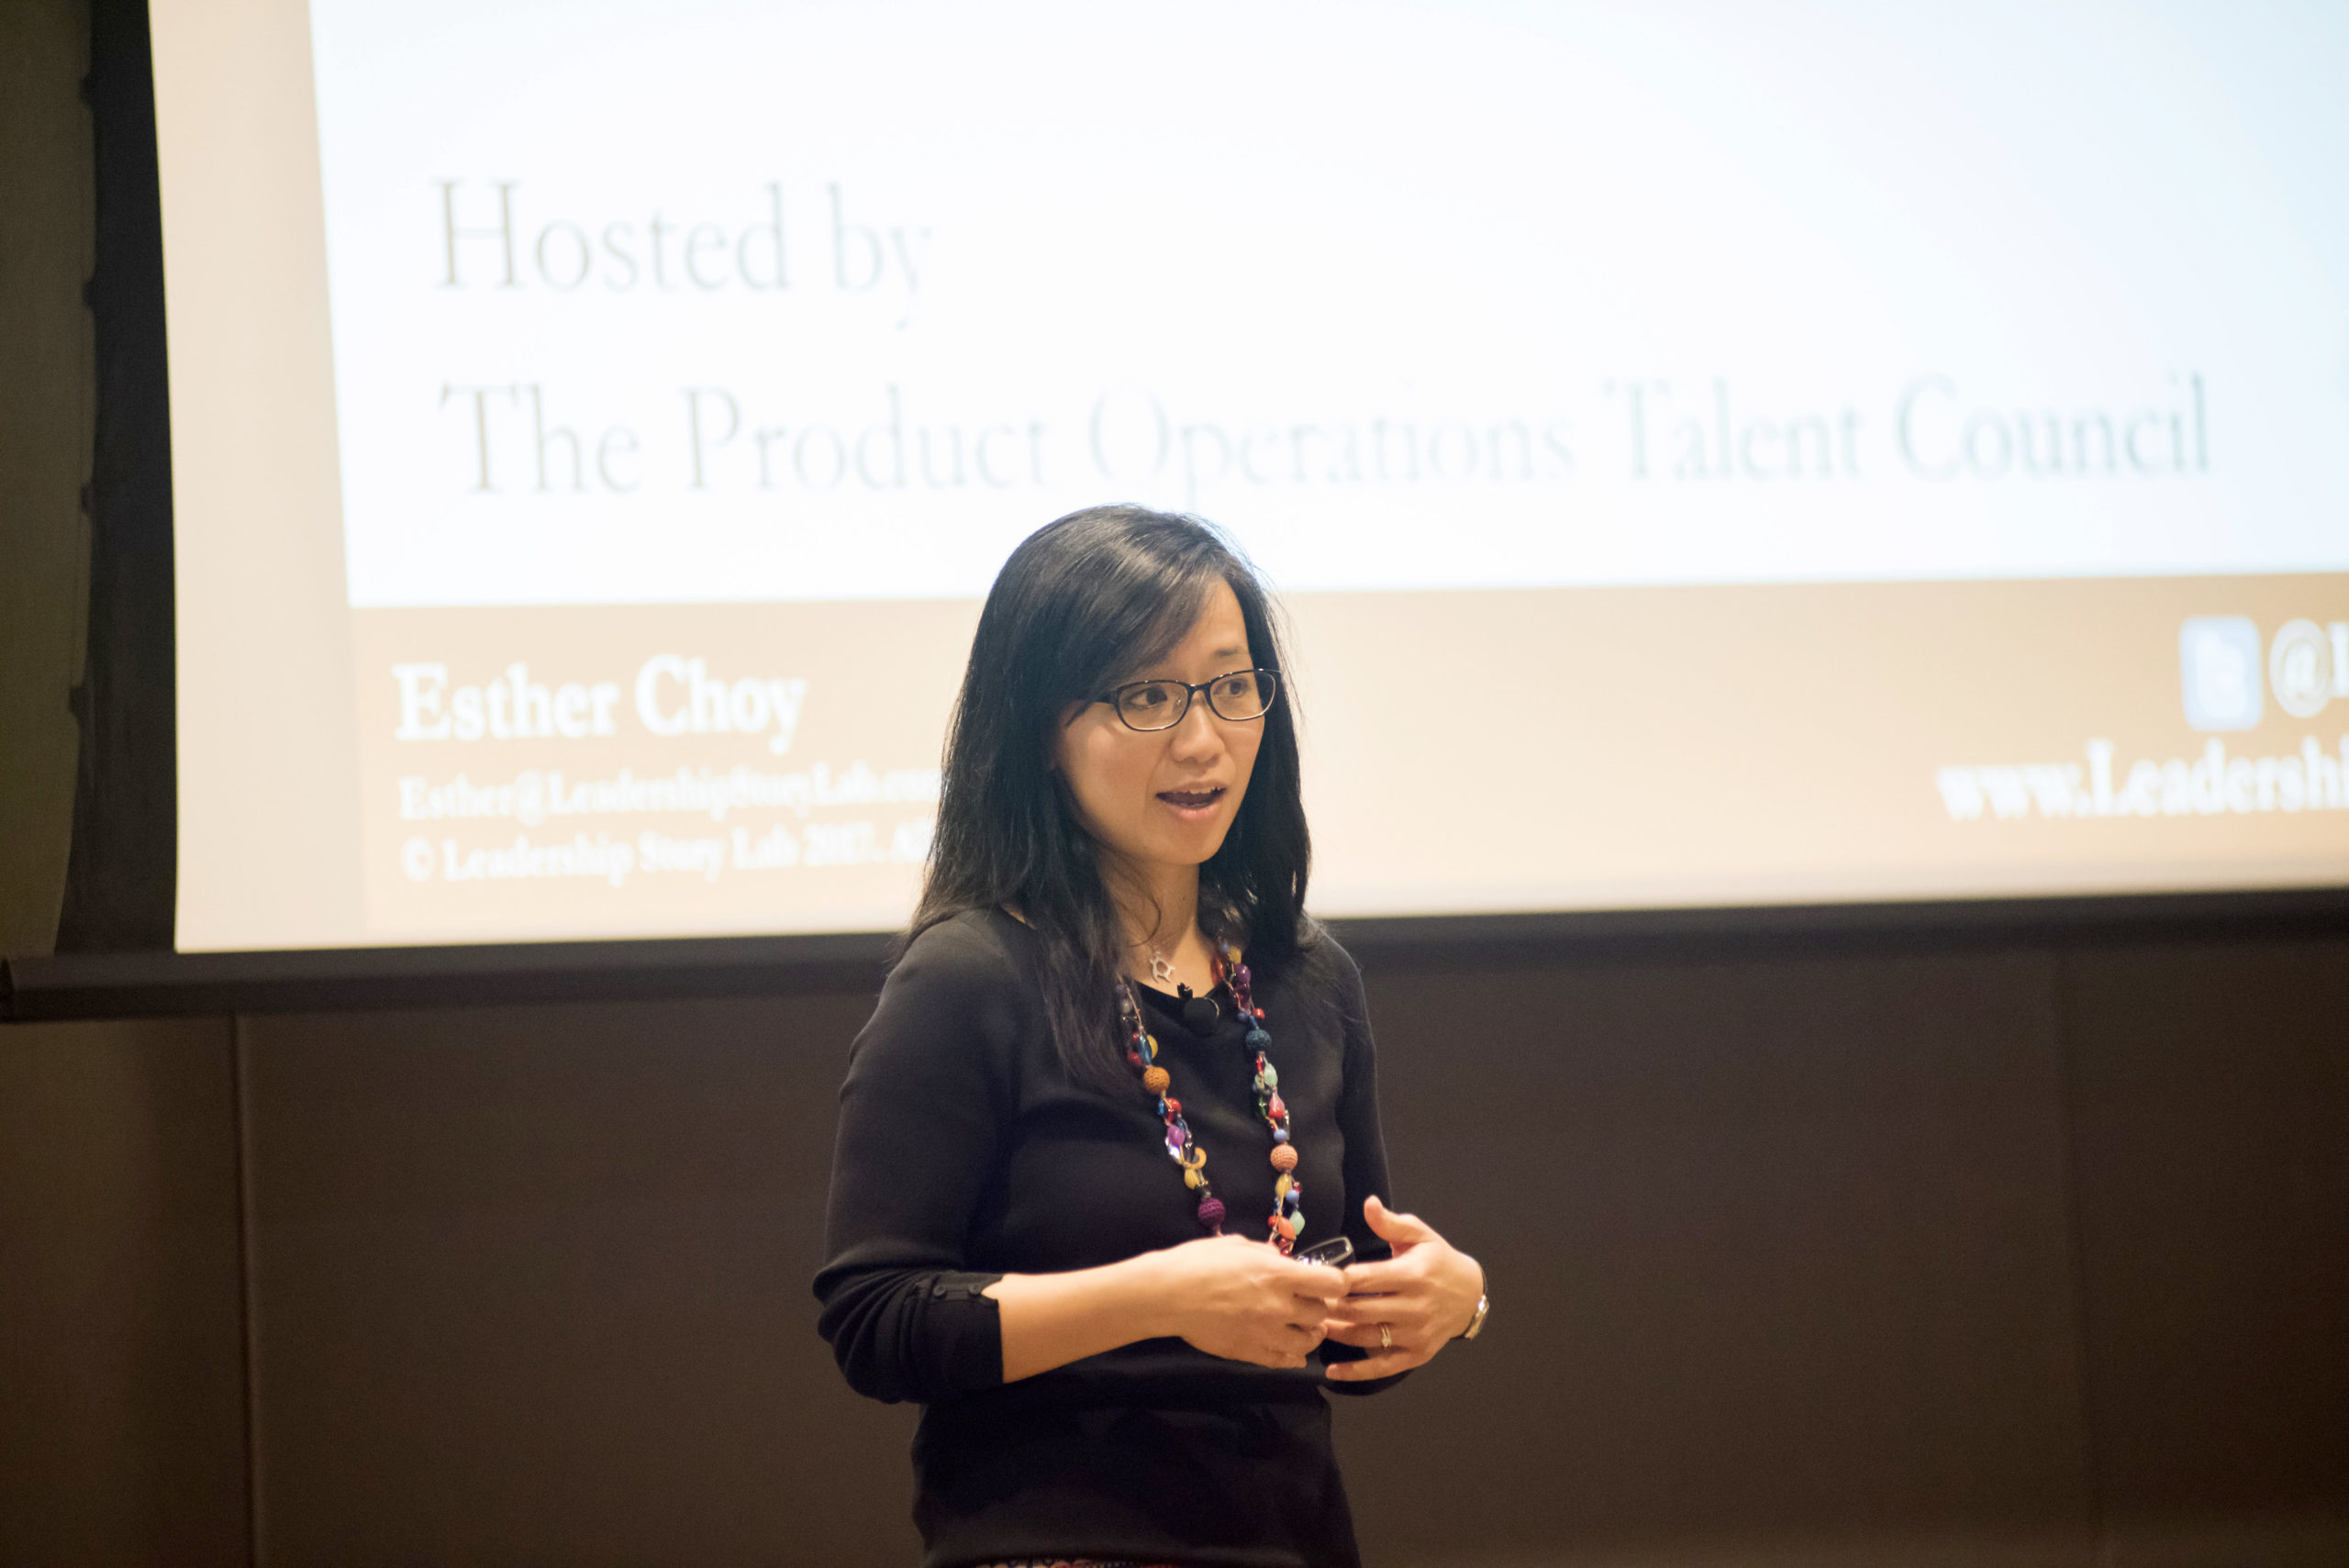 What Your Audience Wants From Presentations - Leadership ...